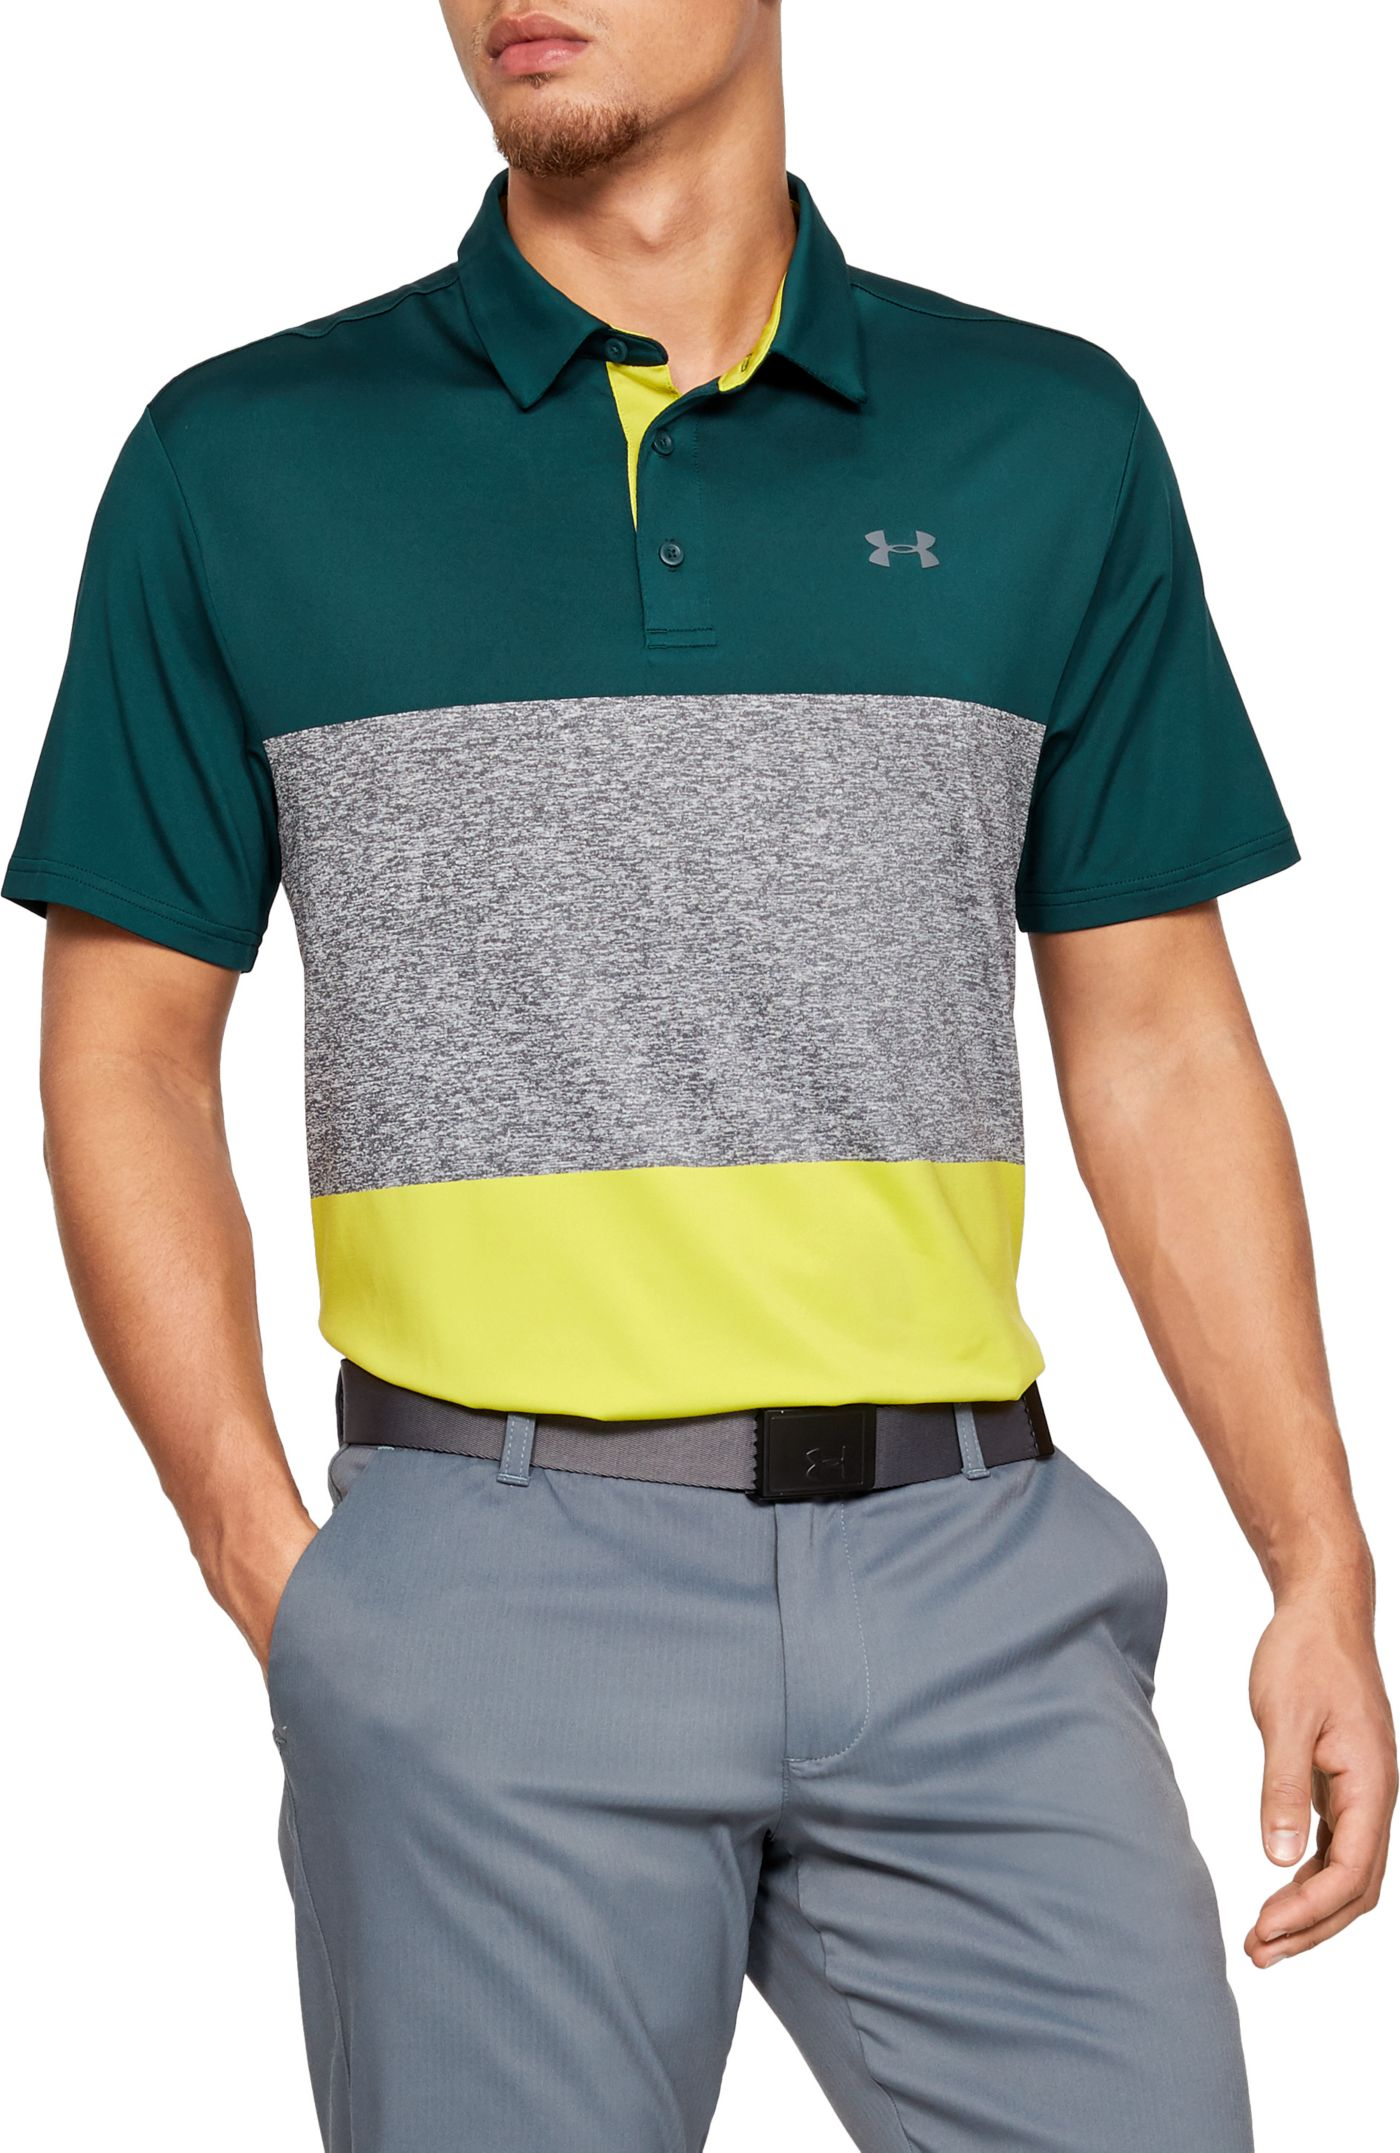 Under Armour Men's Playoff 2.0 Heritage Golf Polo